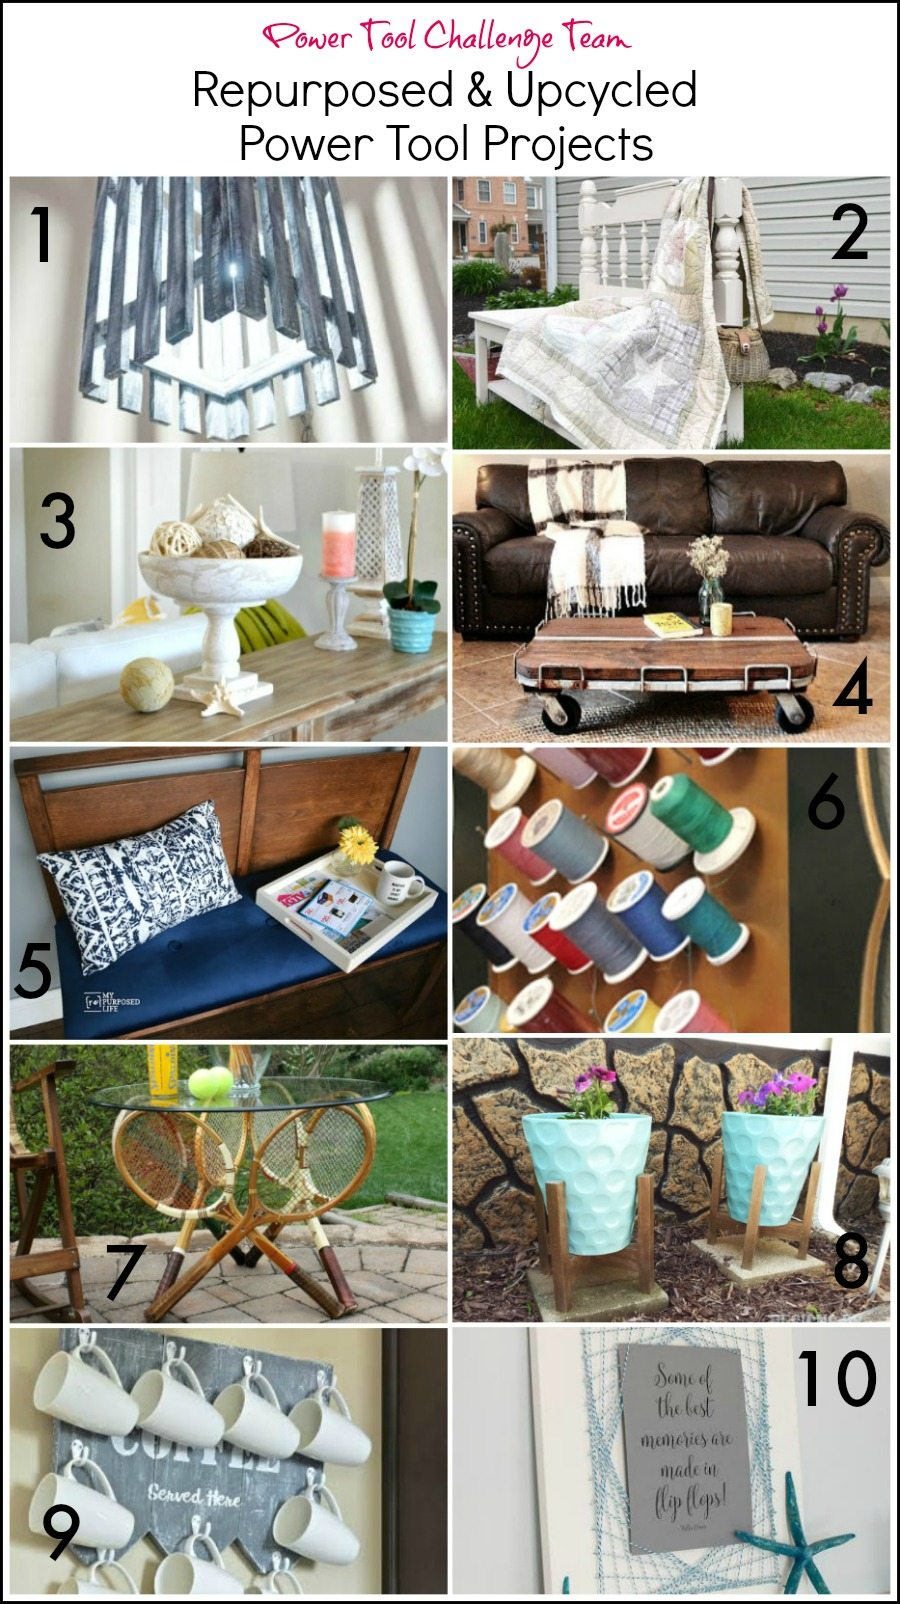 Repurposed Upcycled Power Tool Projects from the Power Tool Challenge Team